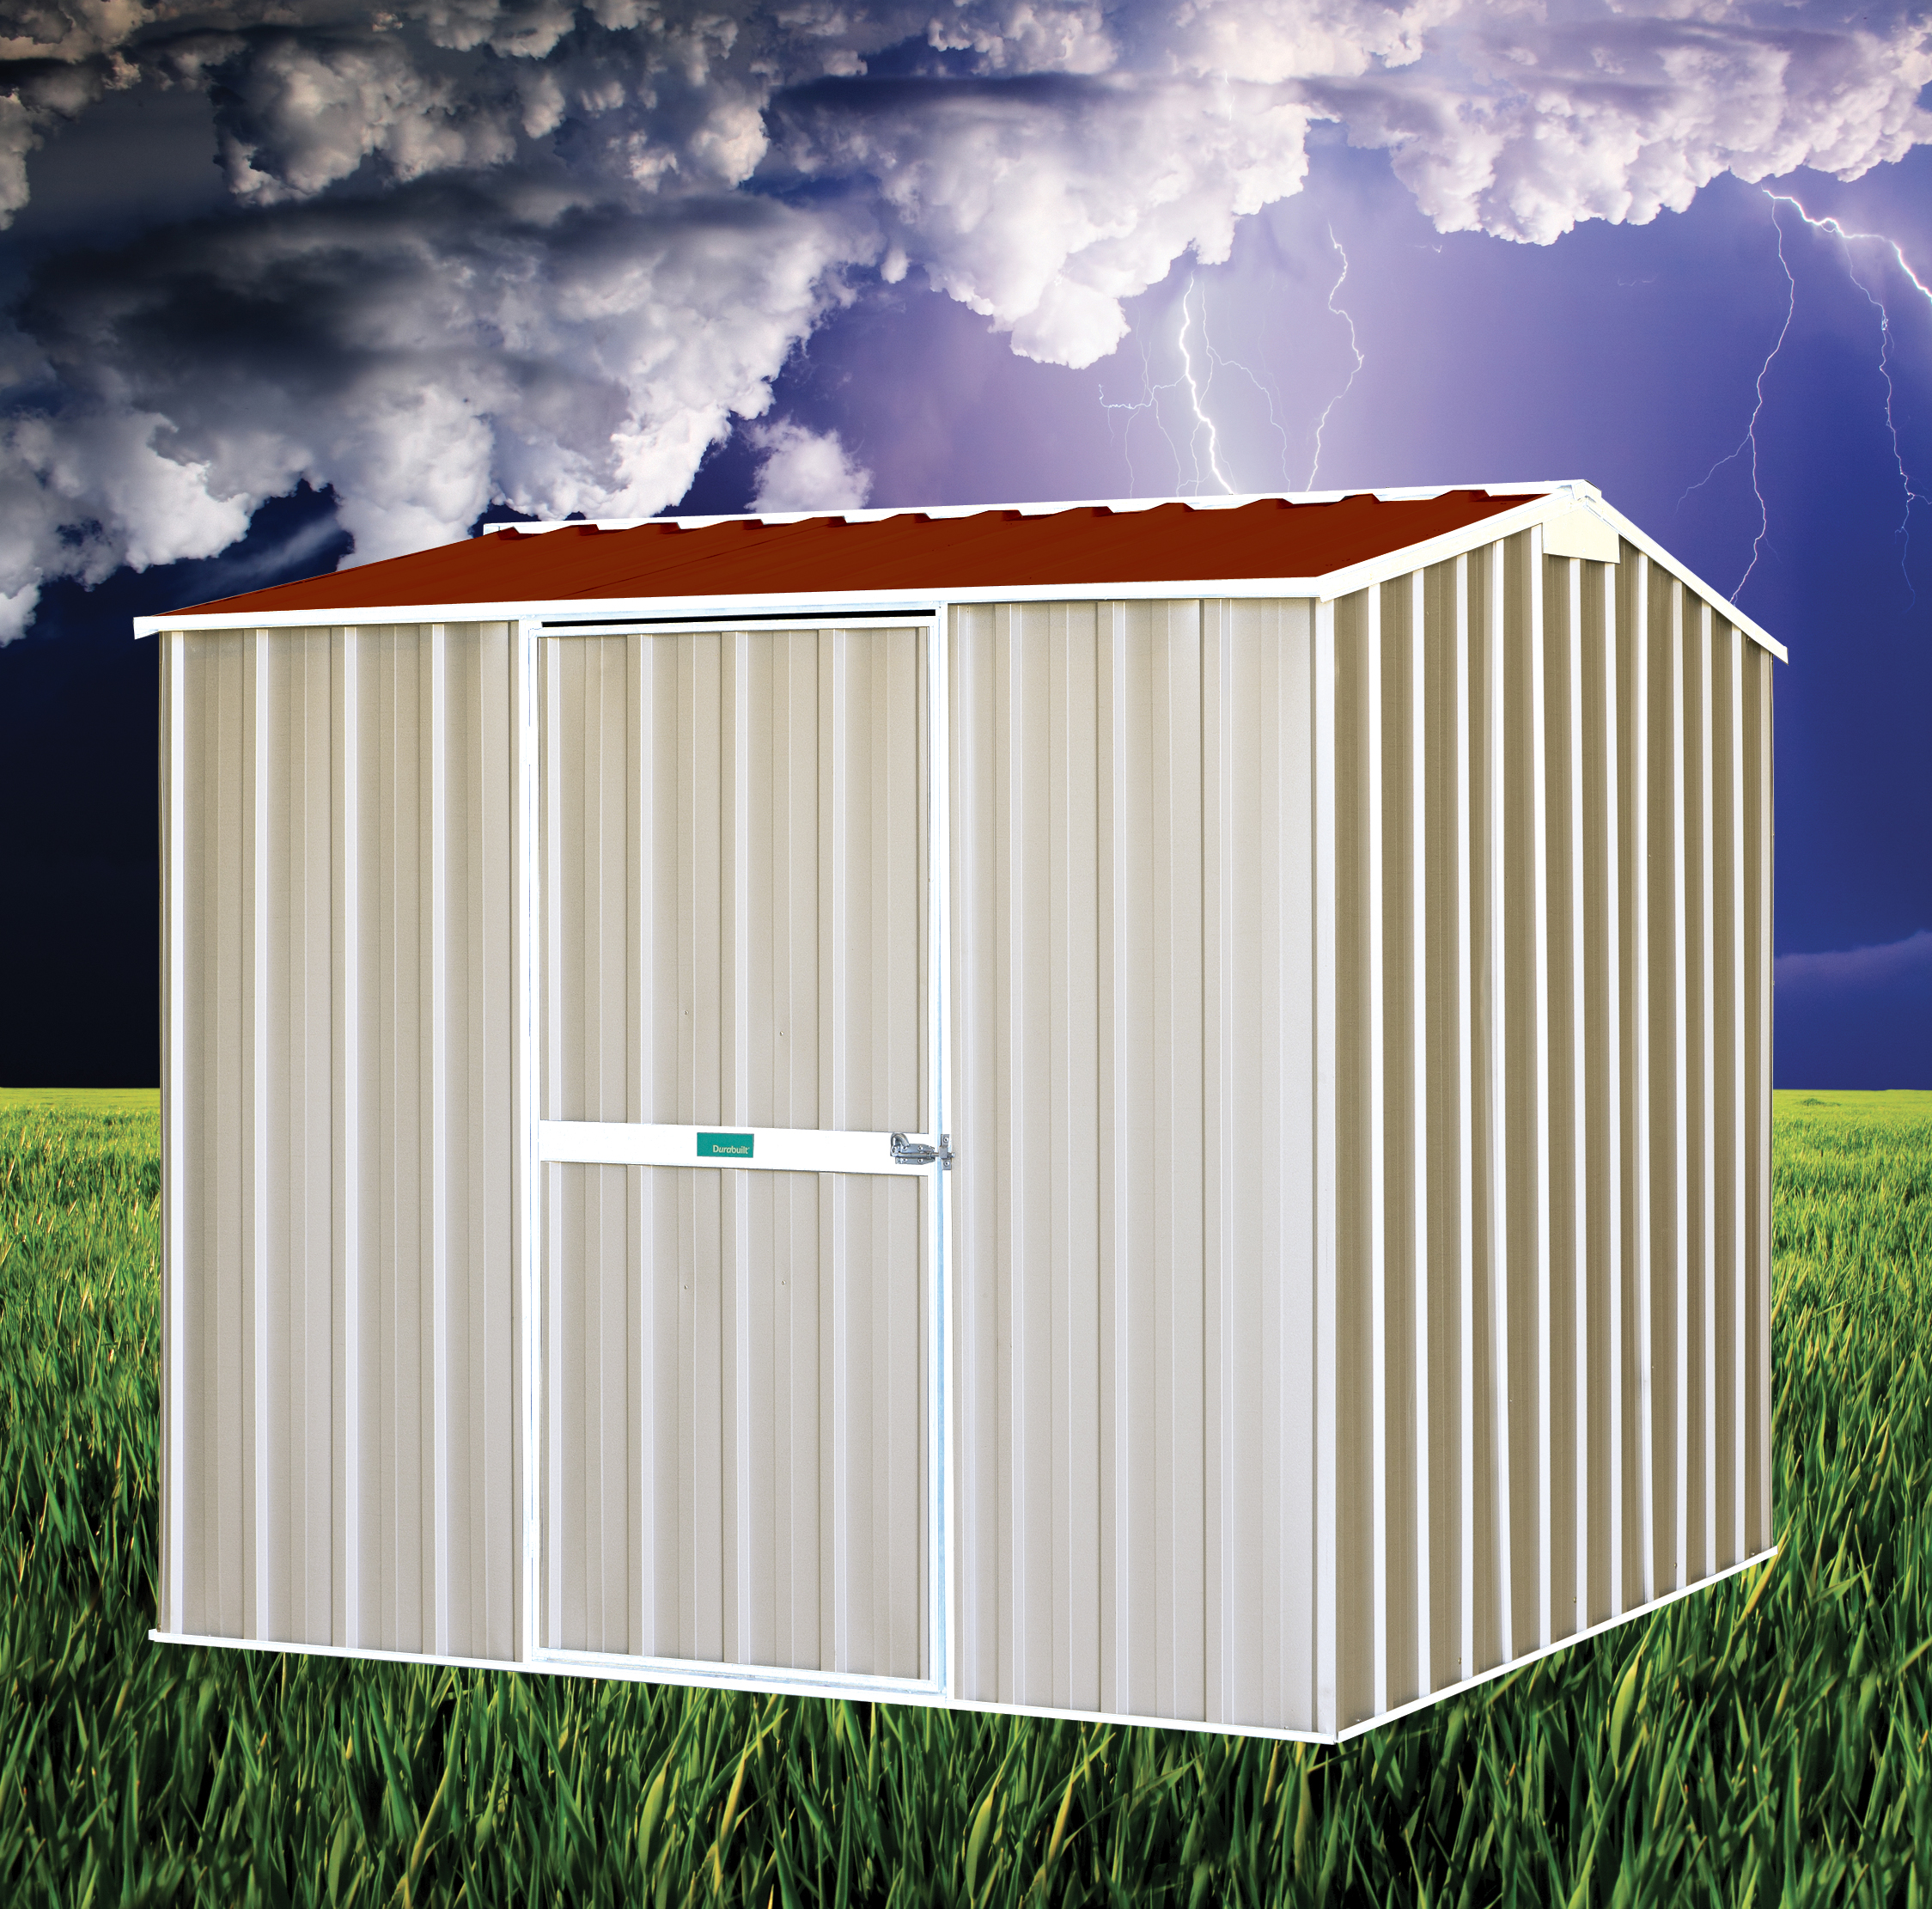 StormSHED EasySHED